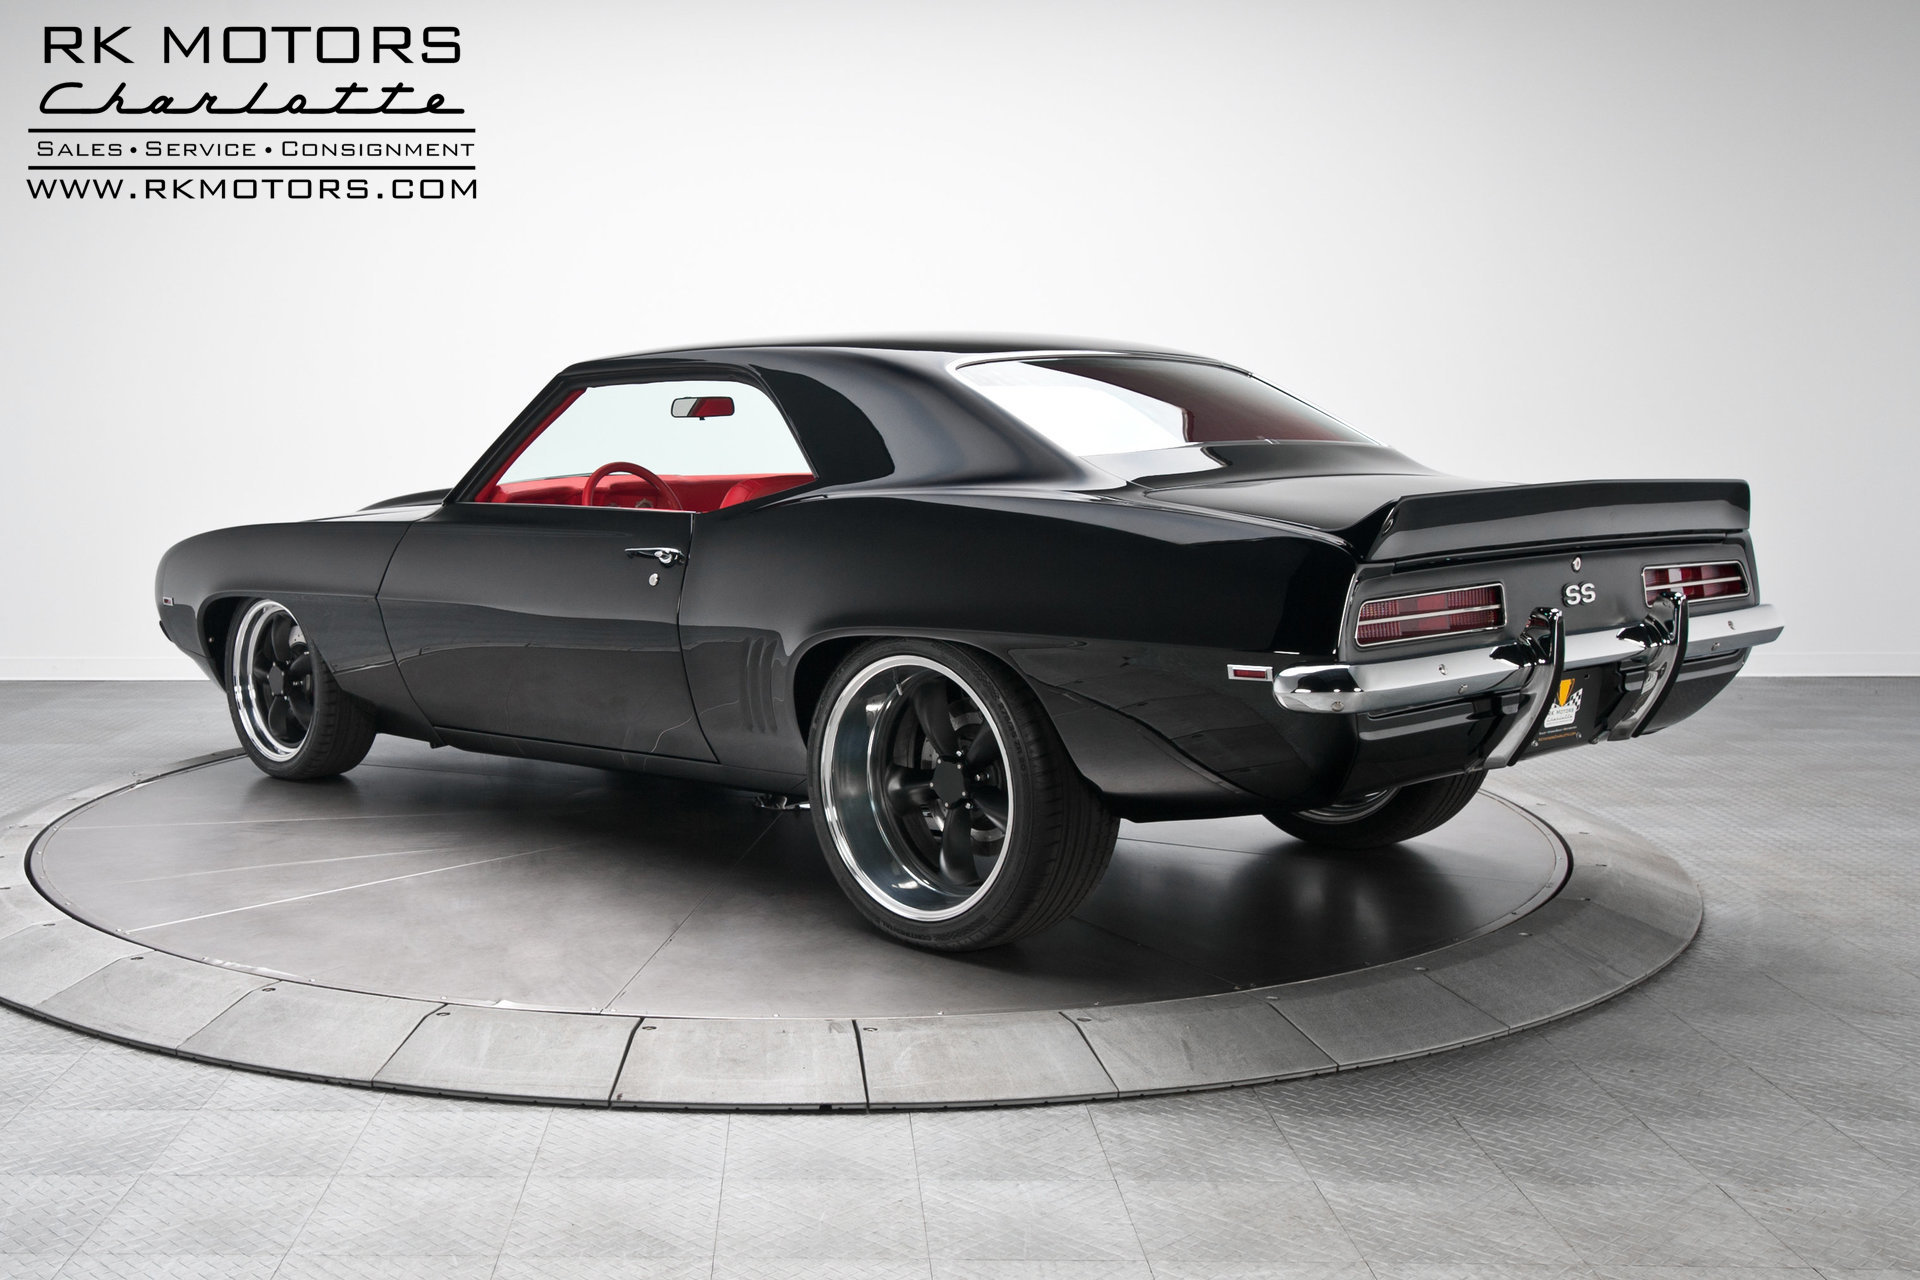 134092 1969 Chevrolet Camaro Rk Motors Classic And Performance Cars For Sale